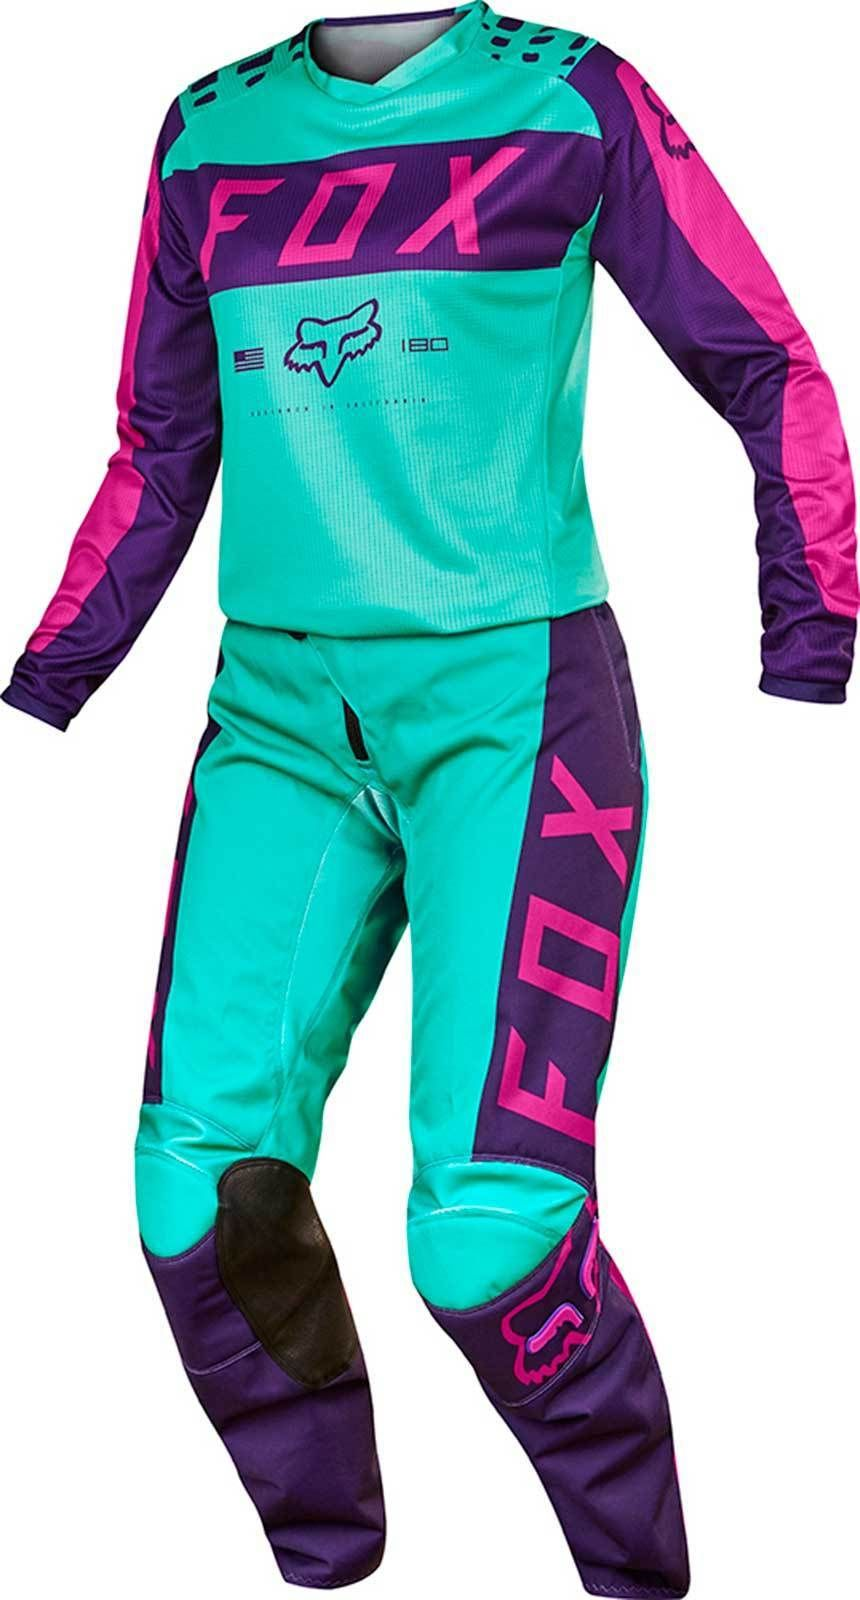 51ef0b3fb8c 2017 Fox Racing Women S 180 Combo - Motocross Mx Atv Dirt Bike Gear Jersey  Pant